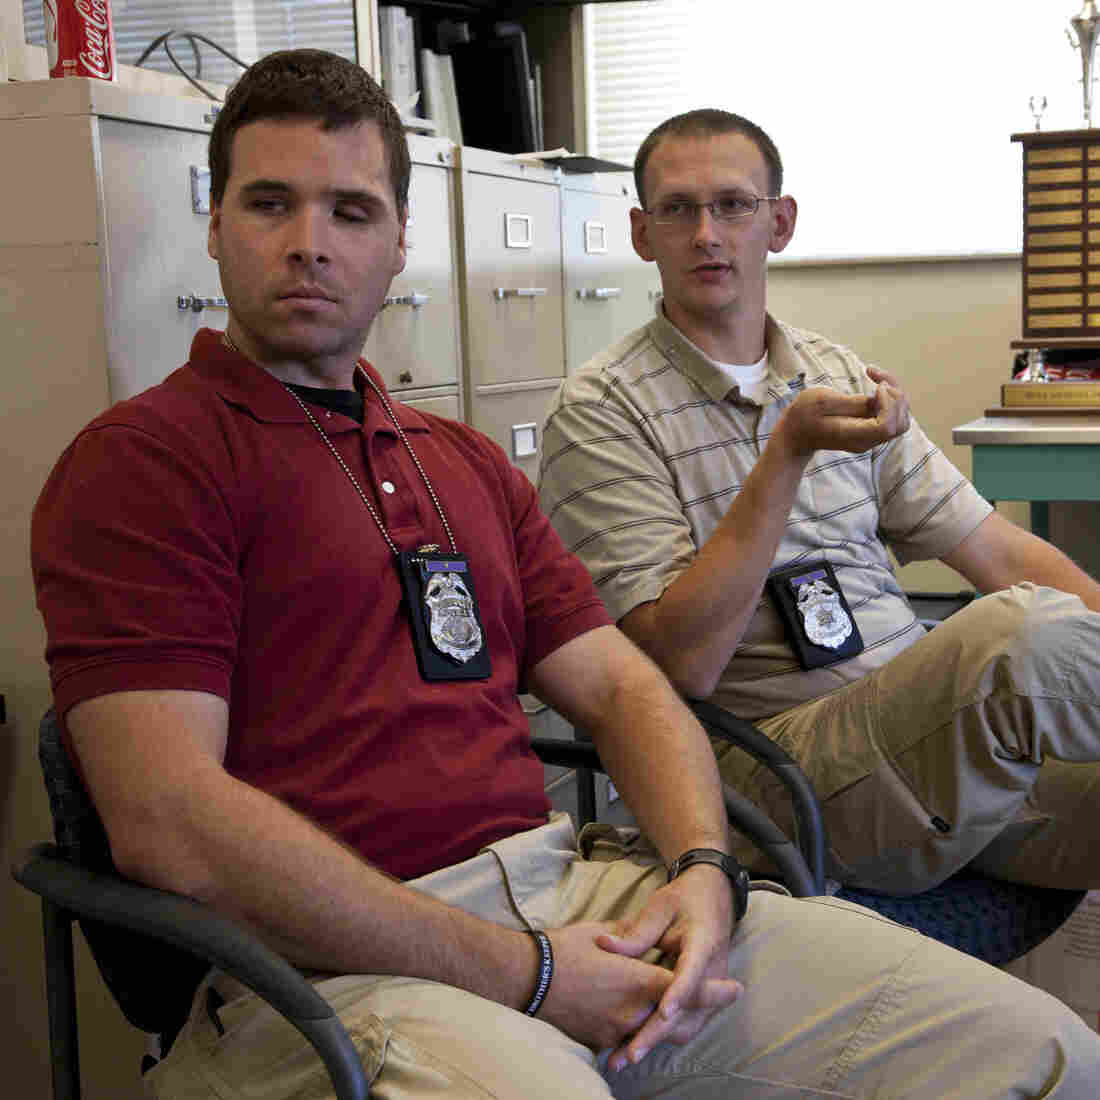 Milwaukee police officers Bryan Norberg (right) and Graham Kunisch were both shot in 2009. Tuesday, they won a jury award of nearly $6 million against the gun store that sold the weapon used against them.